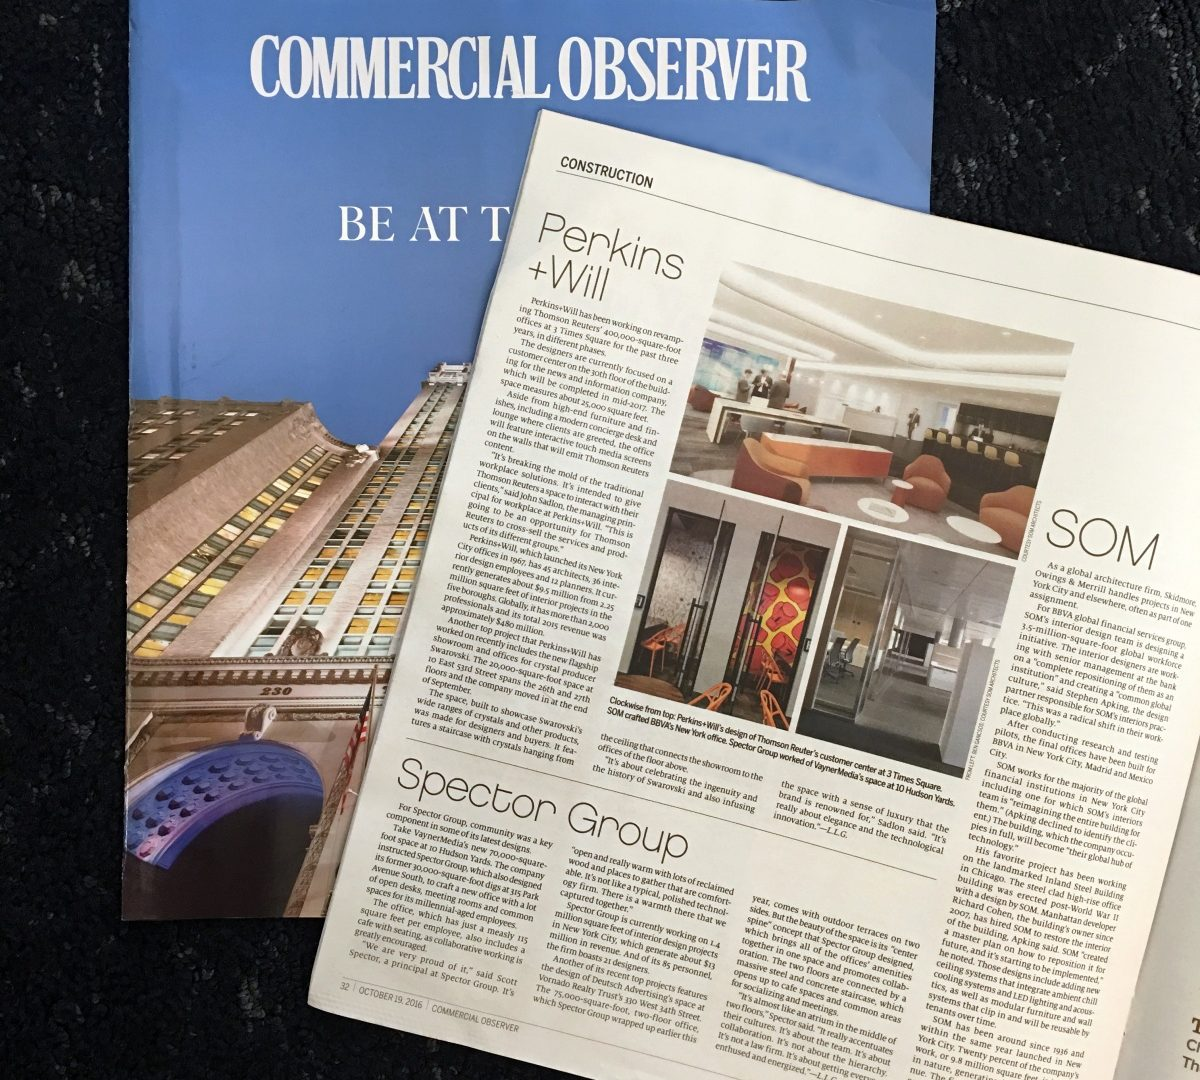 Spector Group Ranks in Commercial Observer's Top 10 Interior Architects